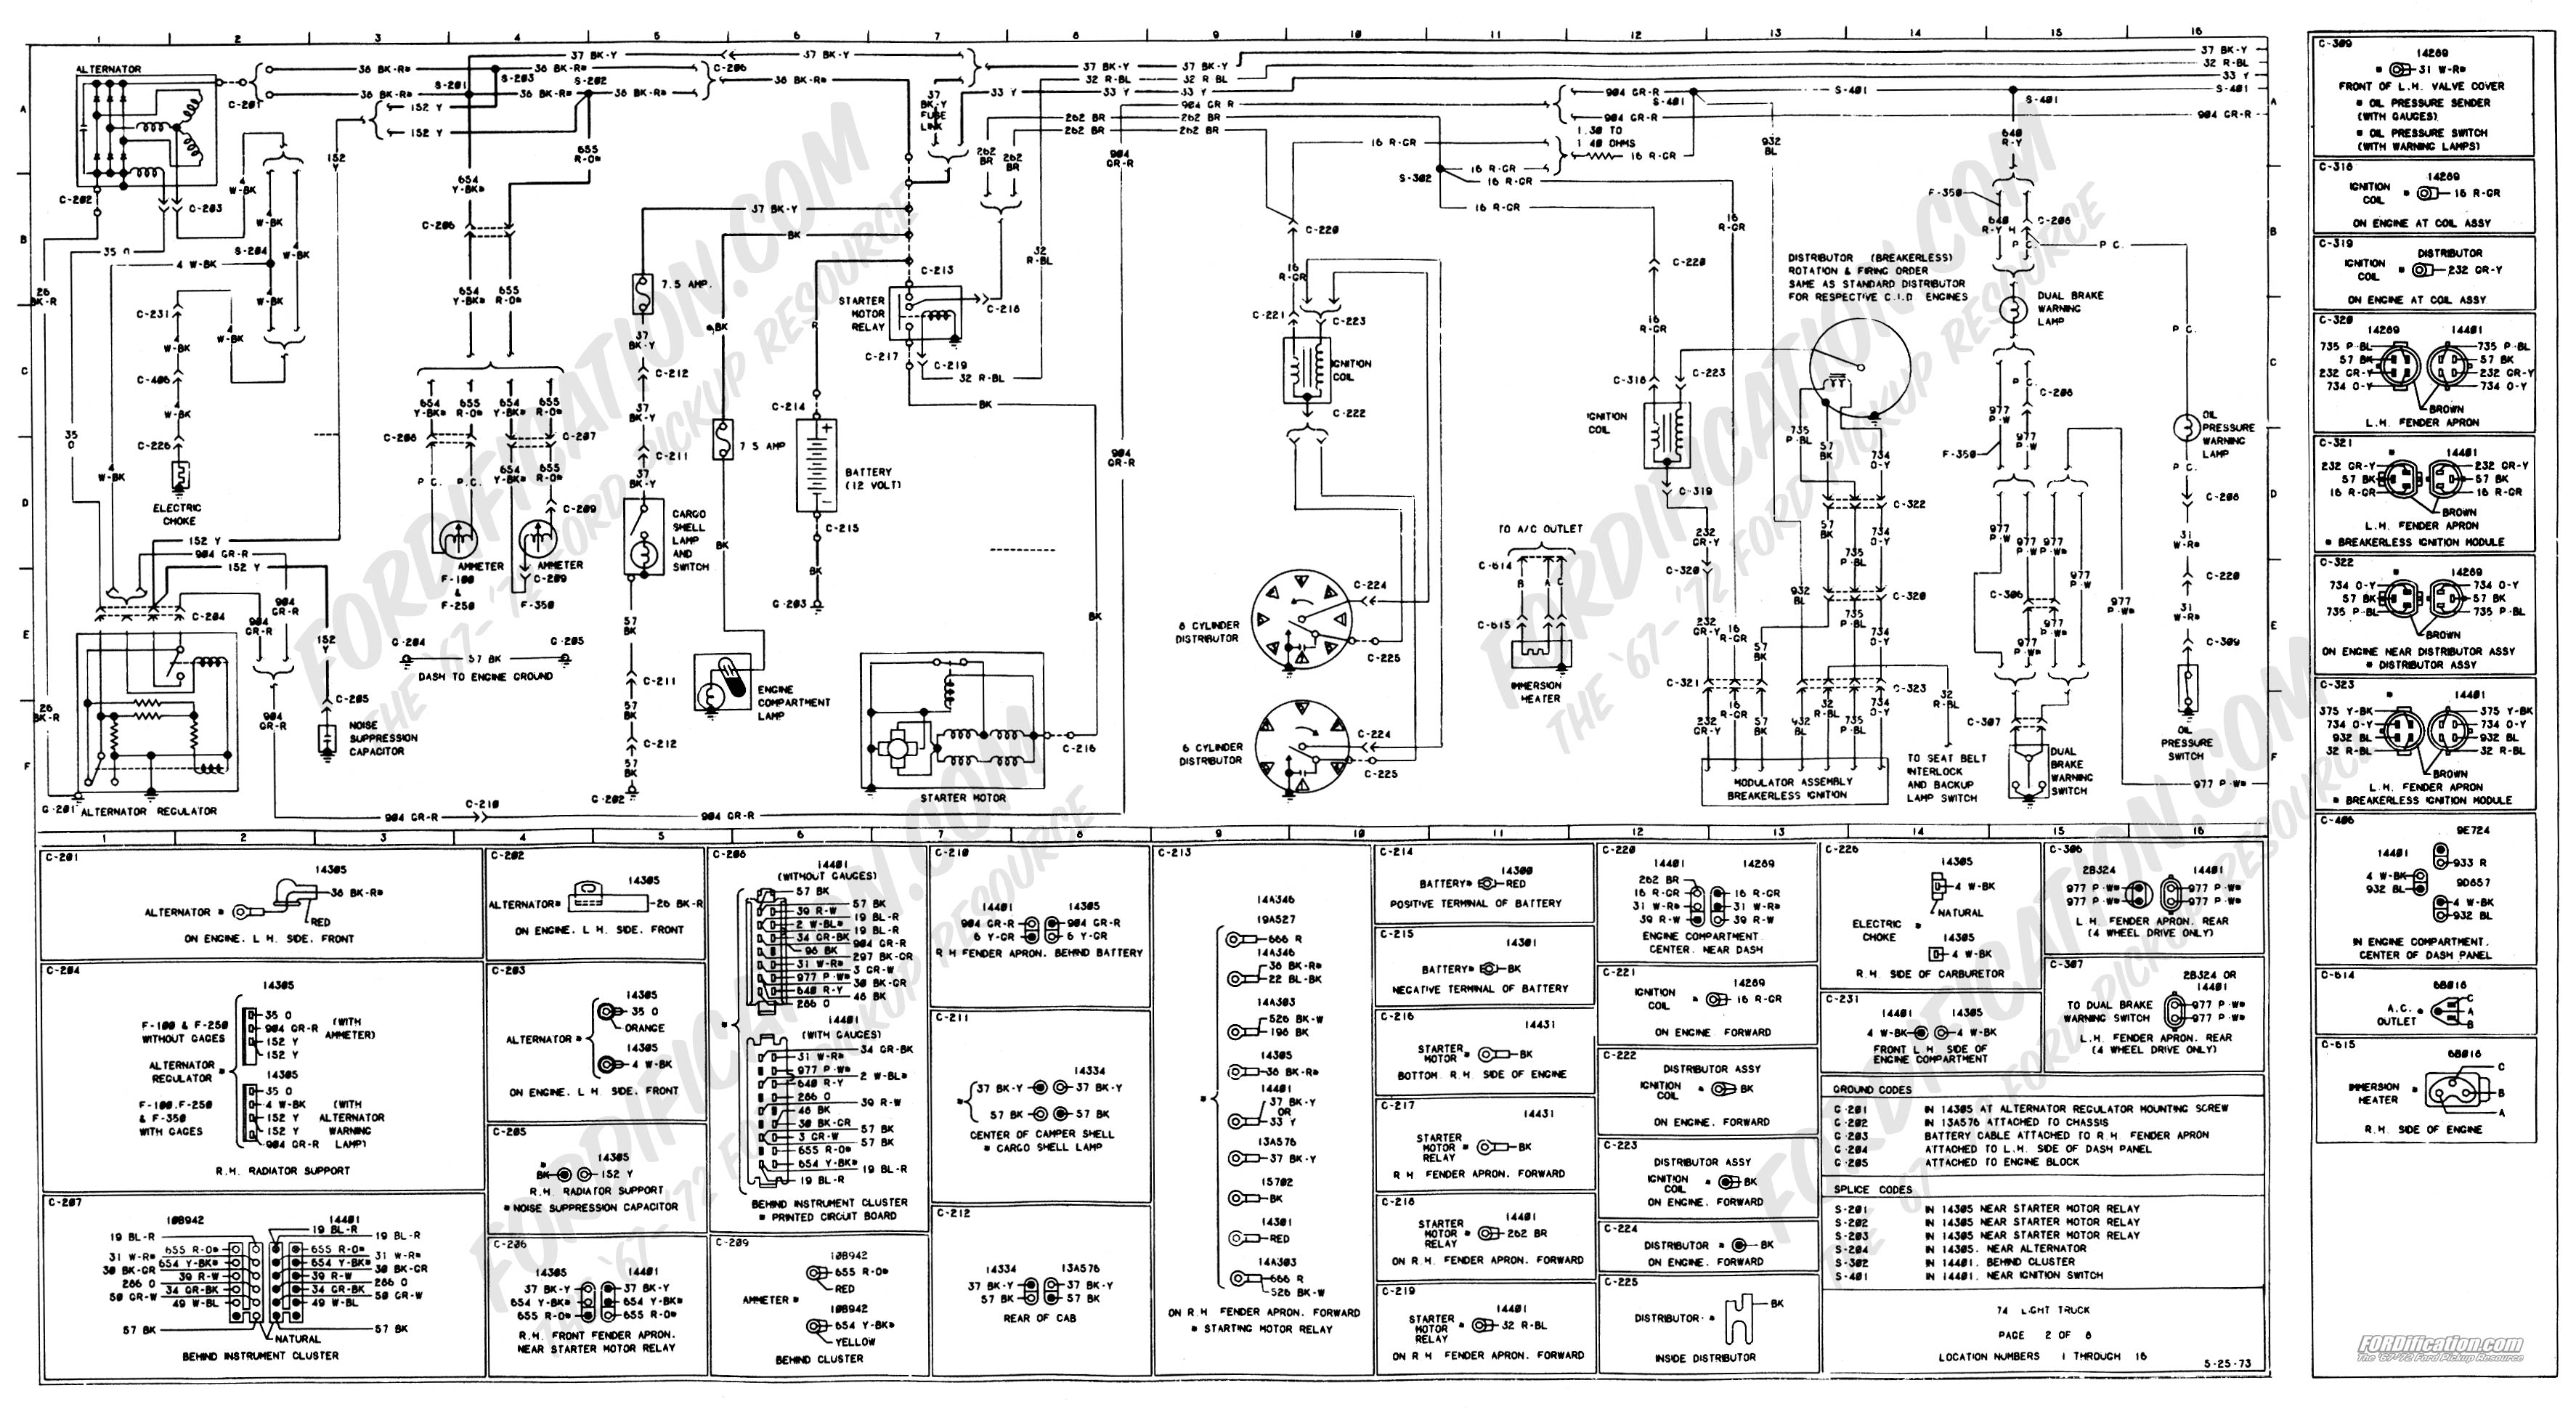 wiring_74master_2of8 1976 ford wiring diagram detailed schematics diagram